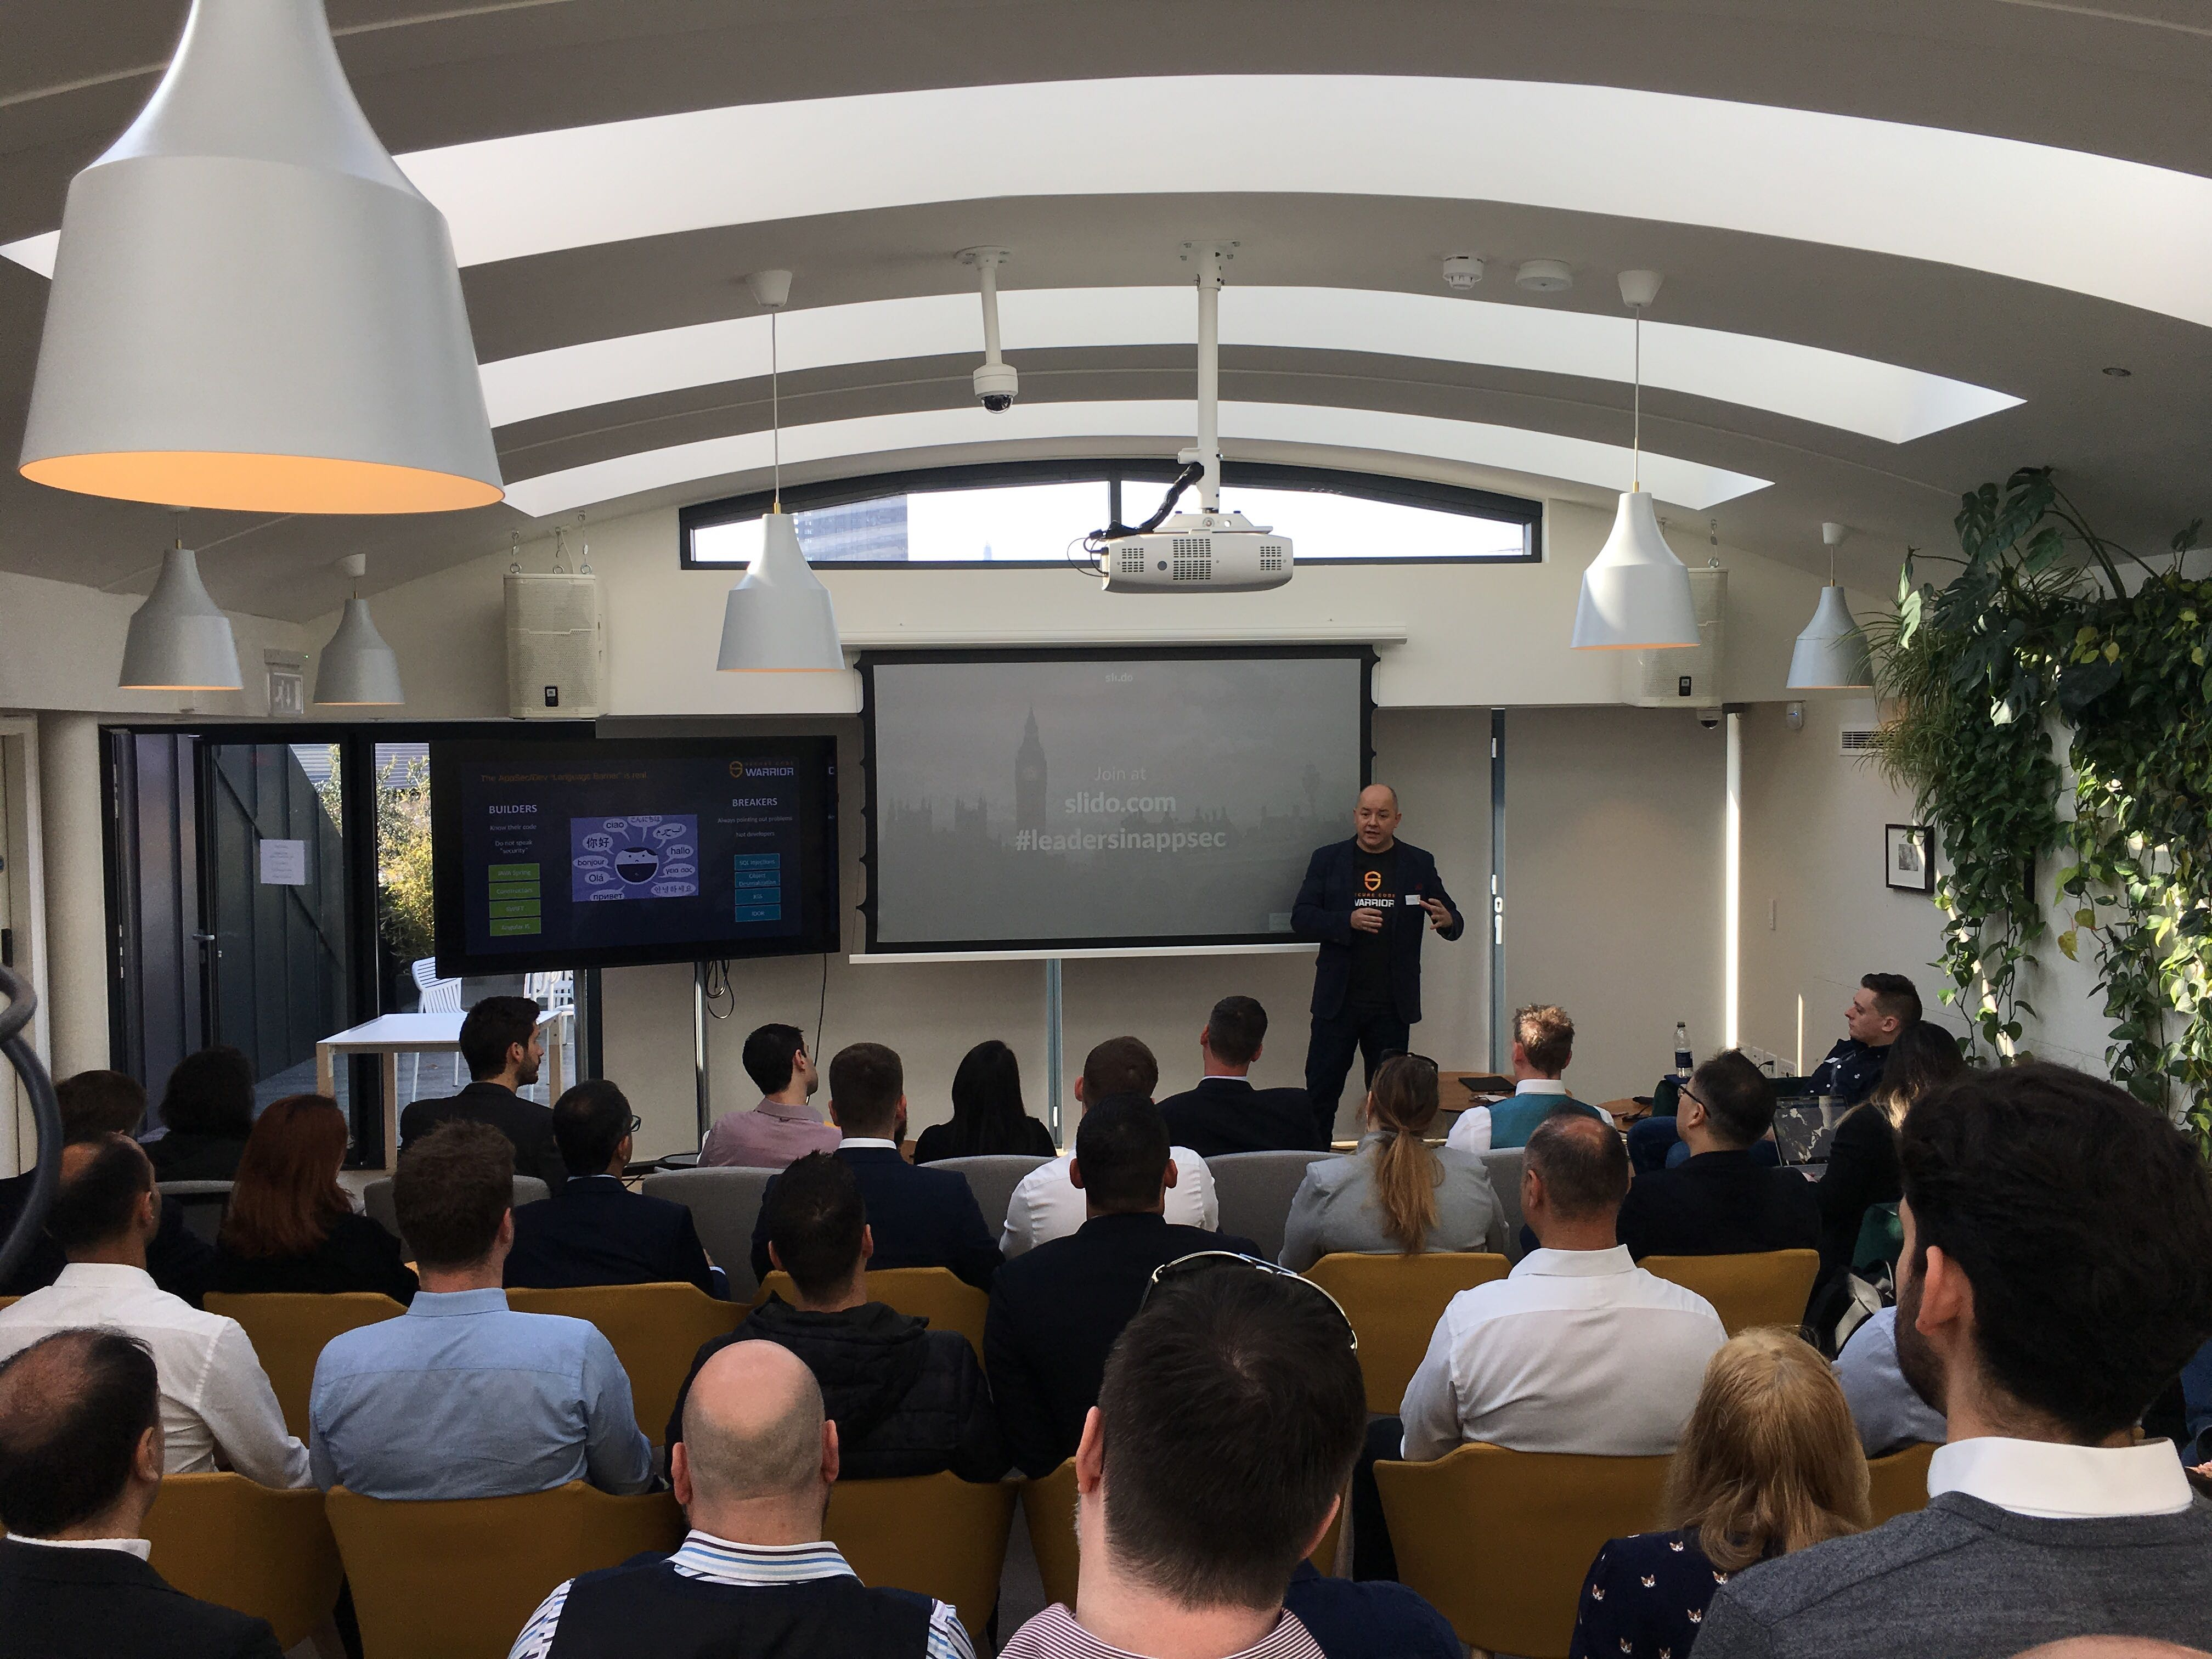 Presentation at a Crowd at Leaders in AppSec event.